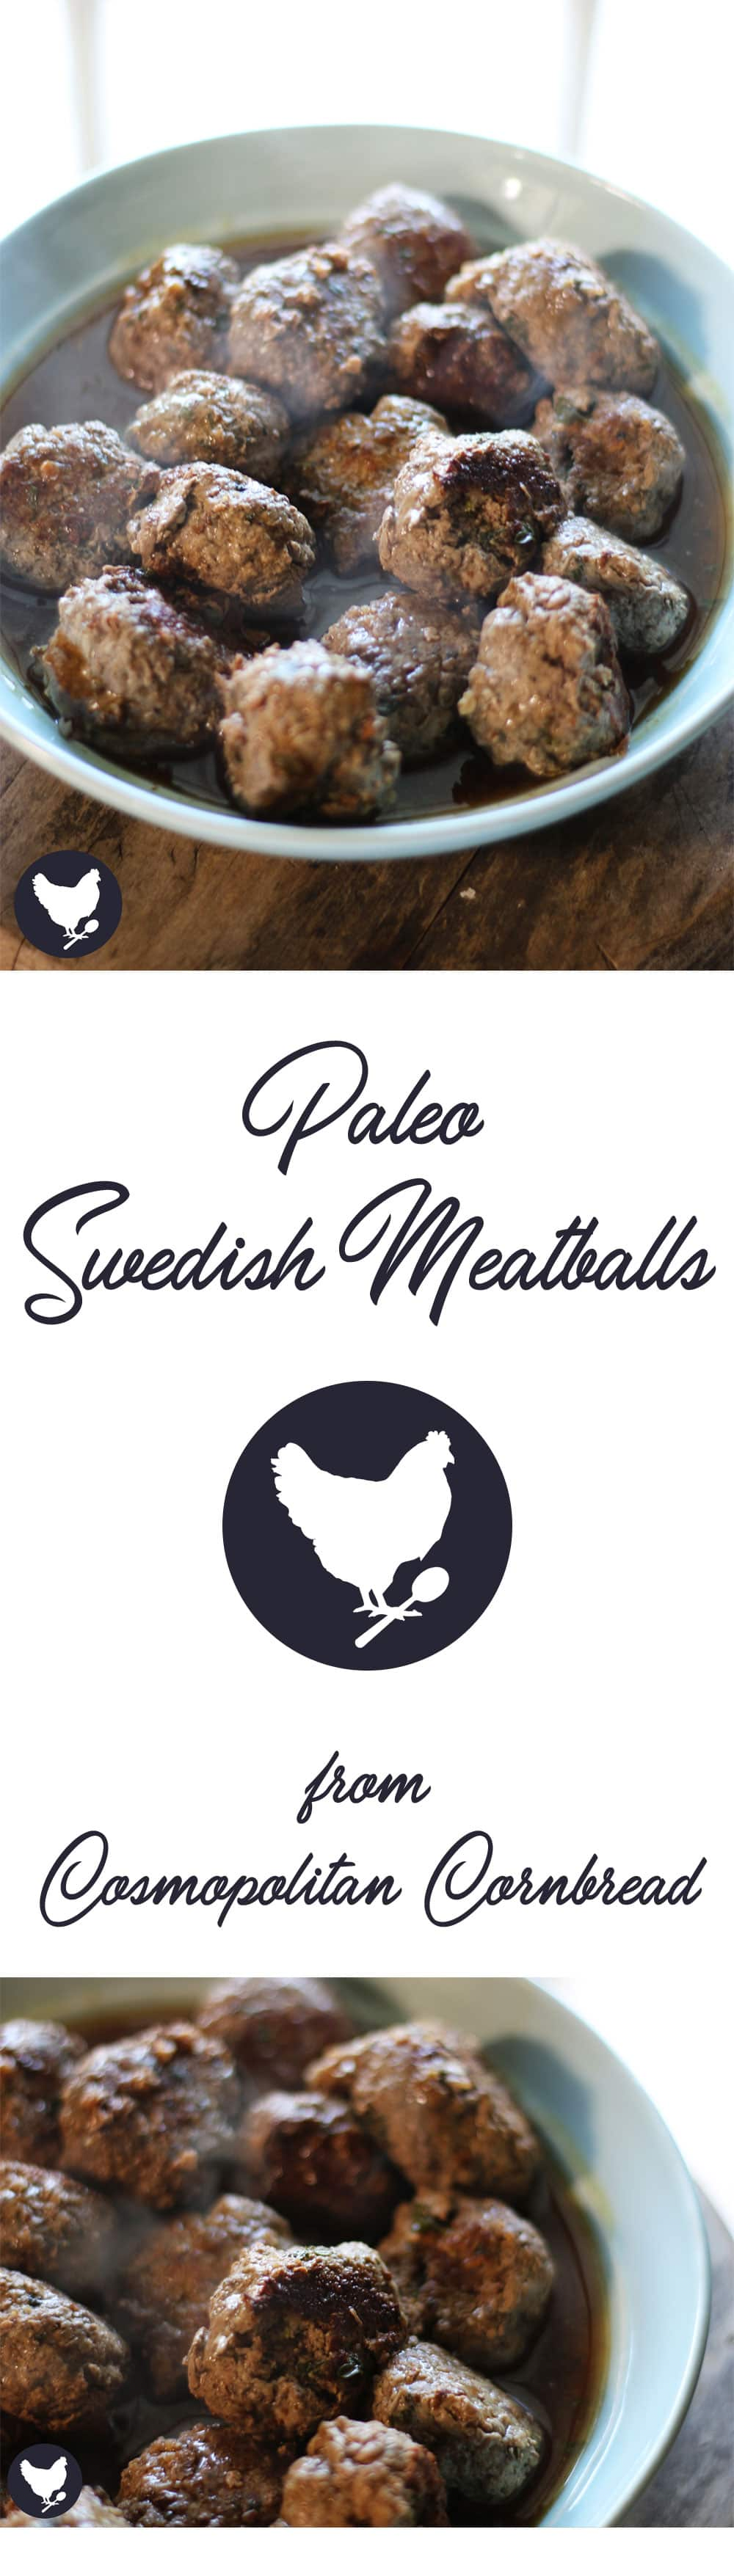 Paleo Swedish Meatballs - Perfectly seasoned and tender Swedish meatballs with a rich and flavorful pan gravy. Get the recipe from Cosmopolitan Cornbread.